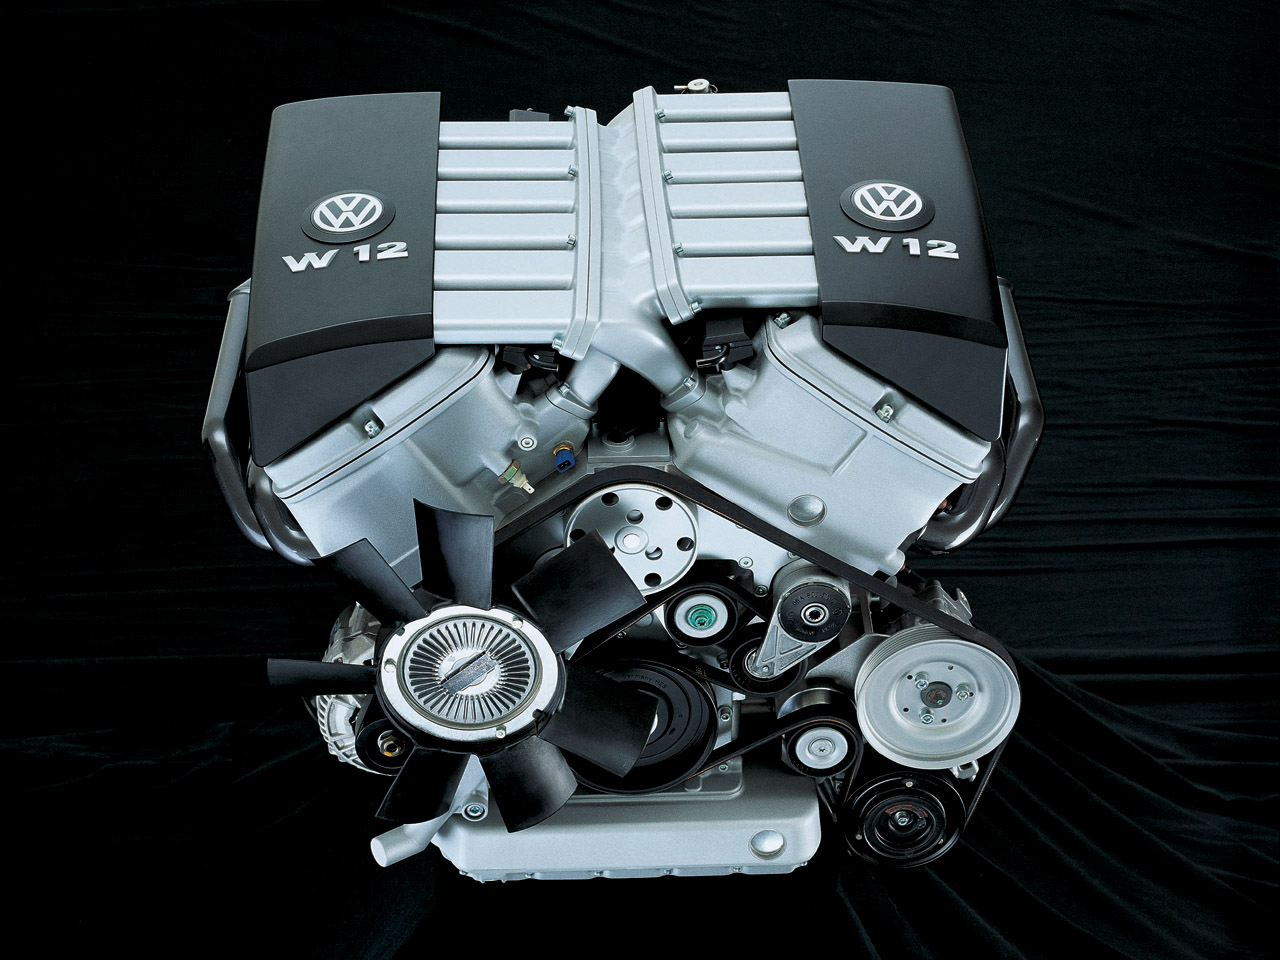 VW W12 Engine at...W12